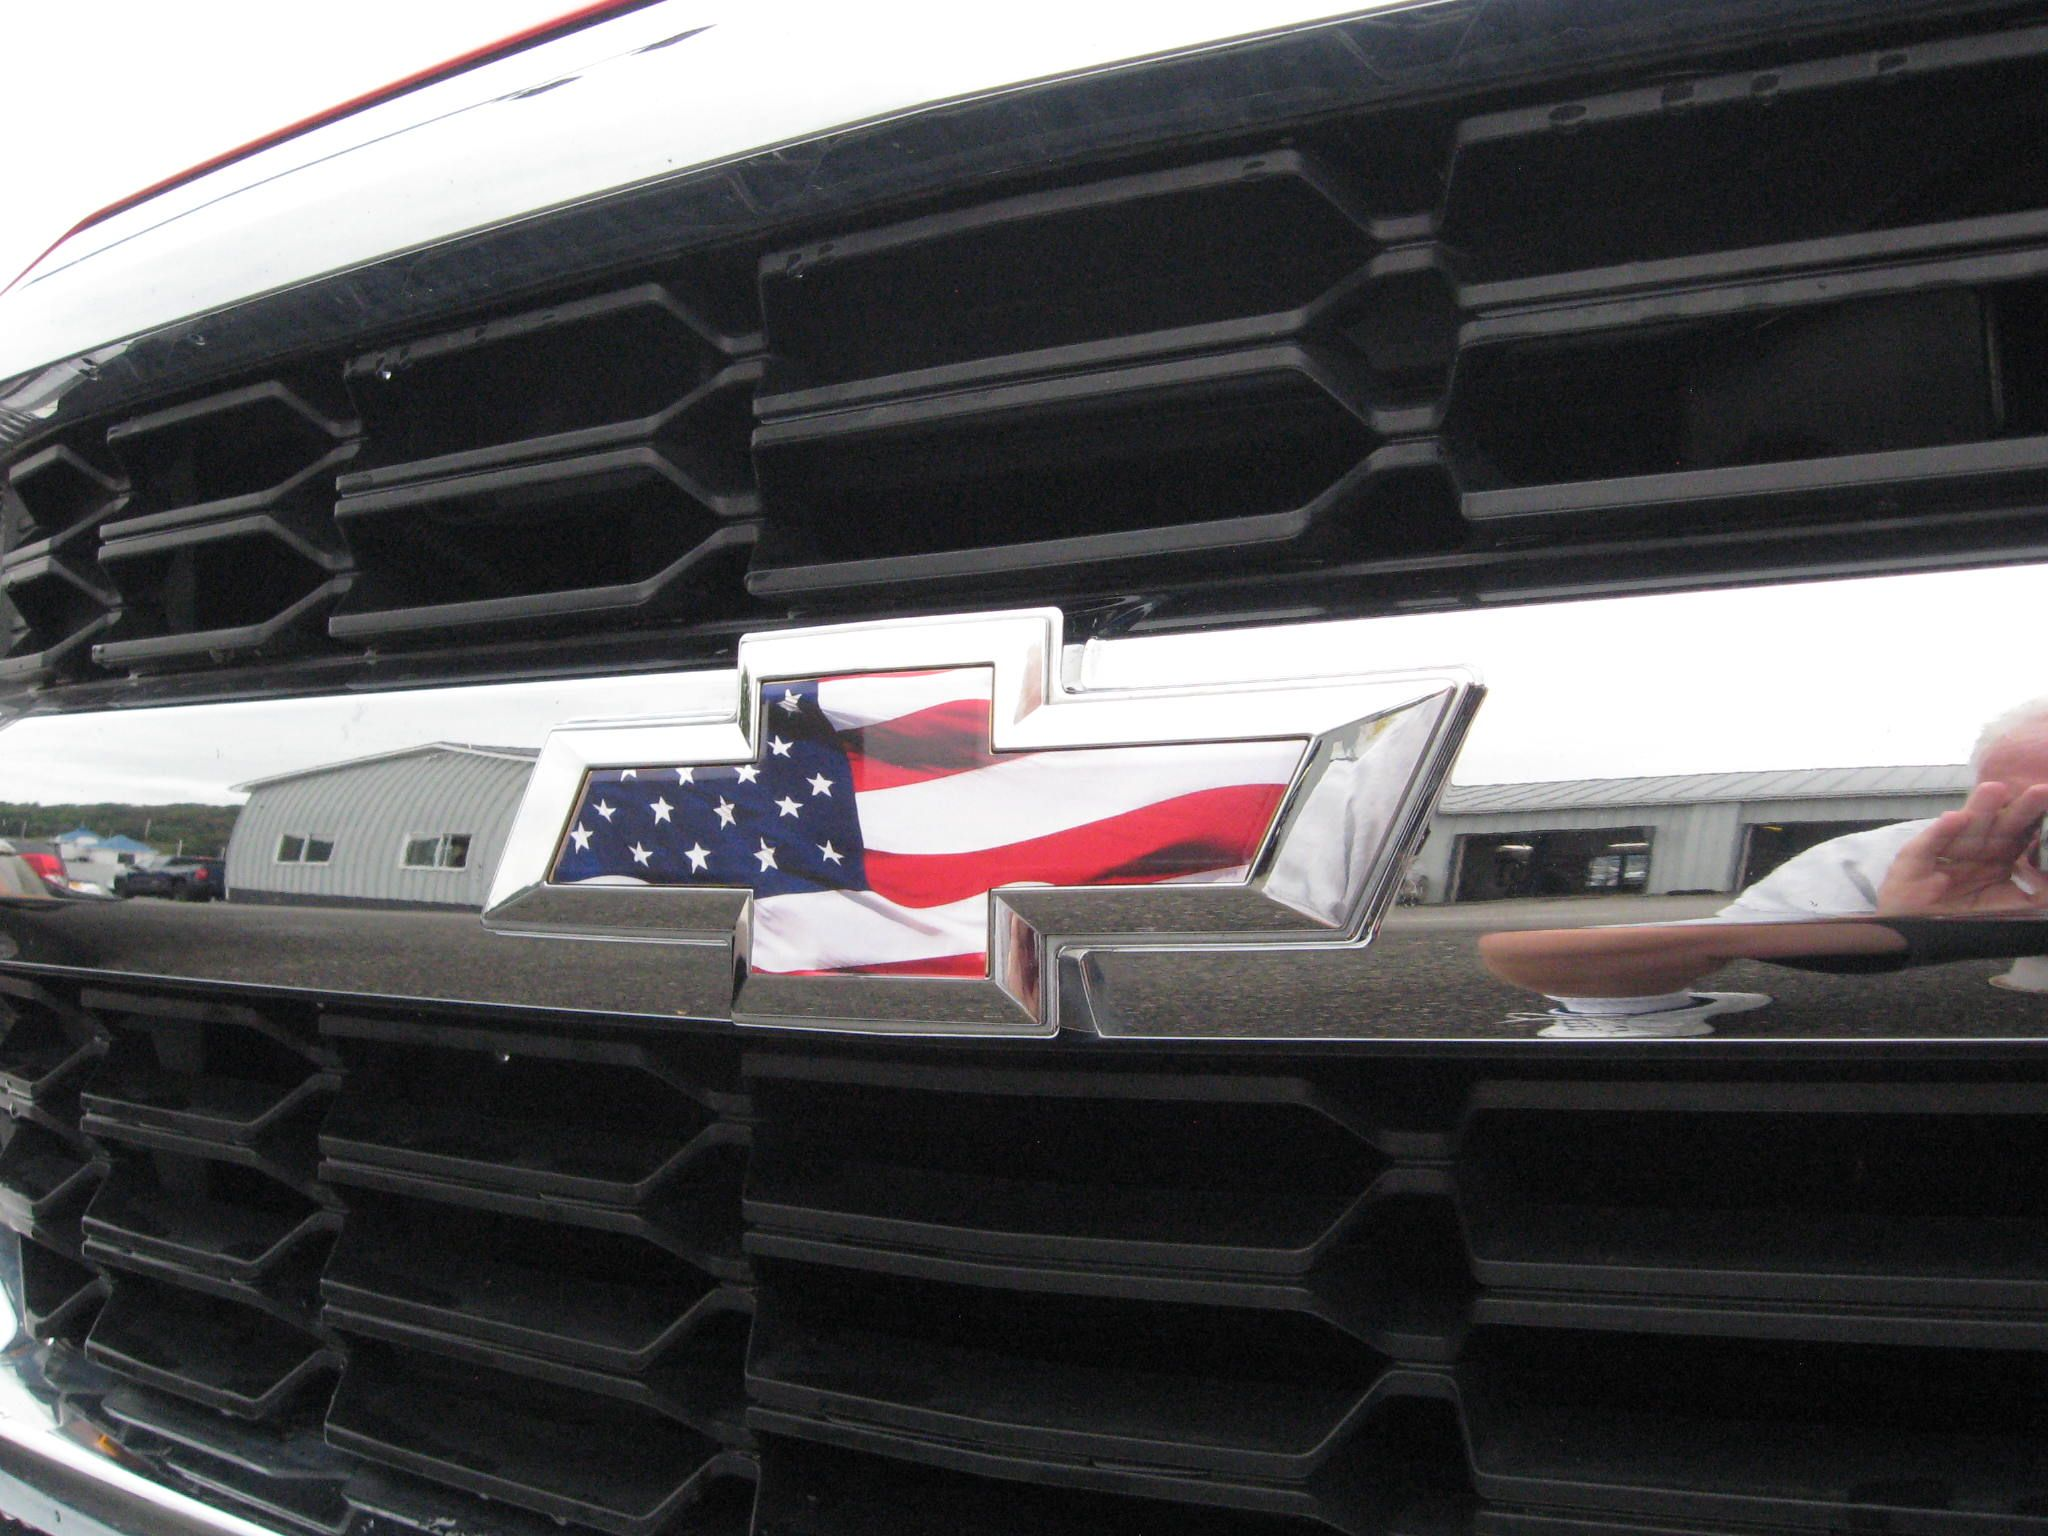 Diy chevy silverado truck american flag vinyl sheet bowtie overlays peel stick and cut